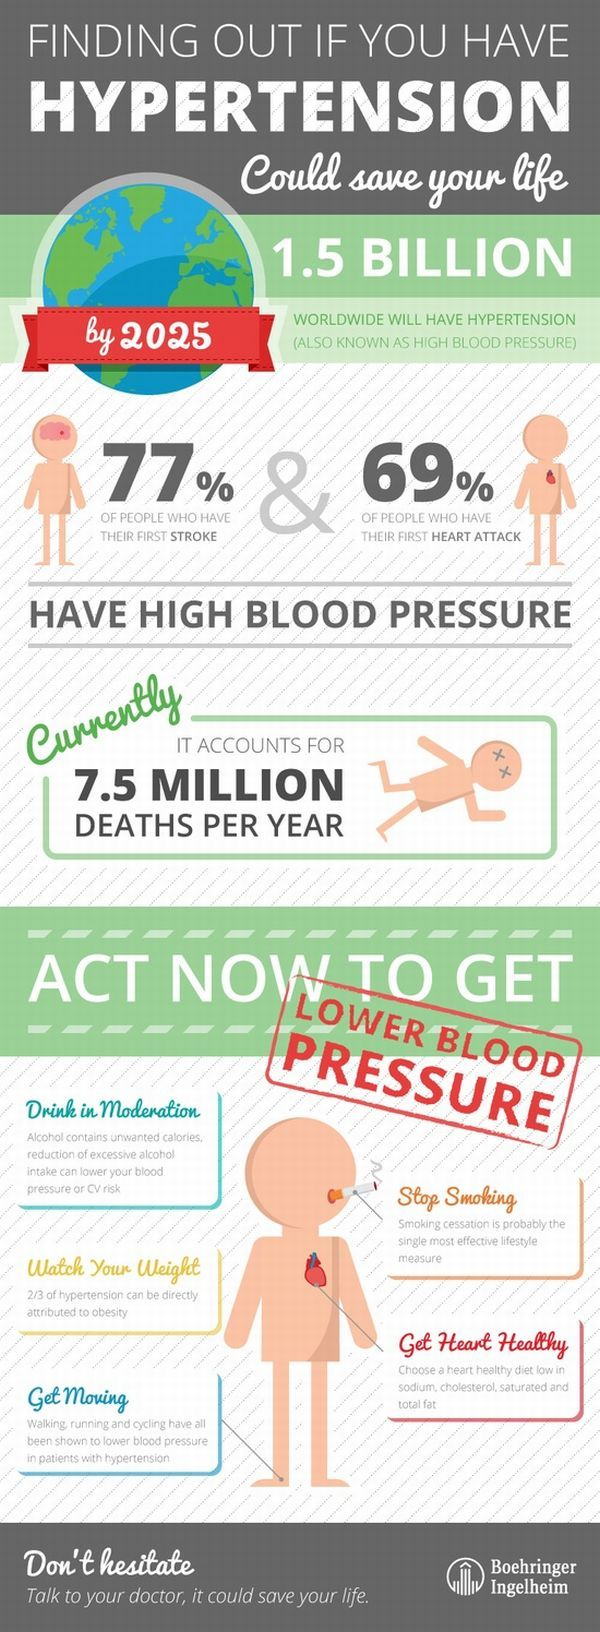 Colour therapy for high bp - Not Knowing You Have High Blood Pressure Could Cost You Your Life This Infographic From Boehringer Ingelheim Provides Five Steps To Help Lower Blood